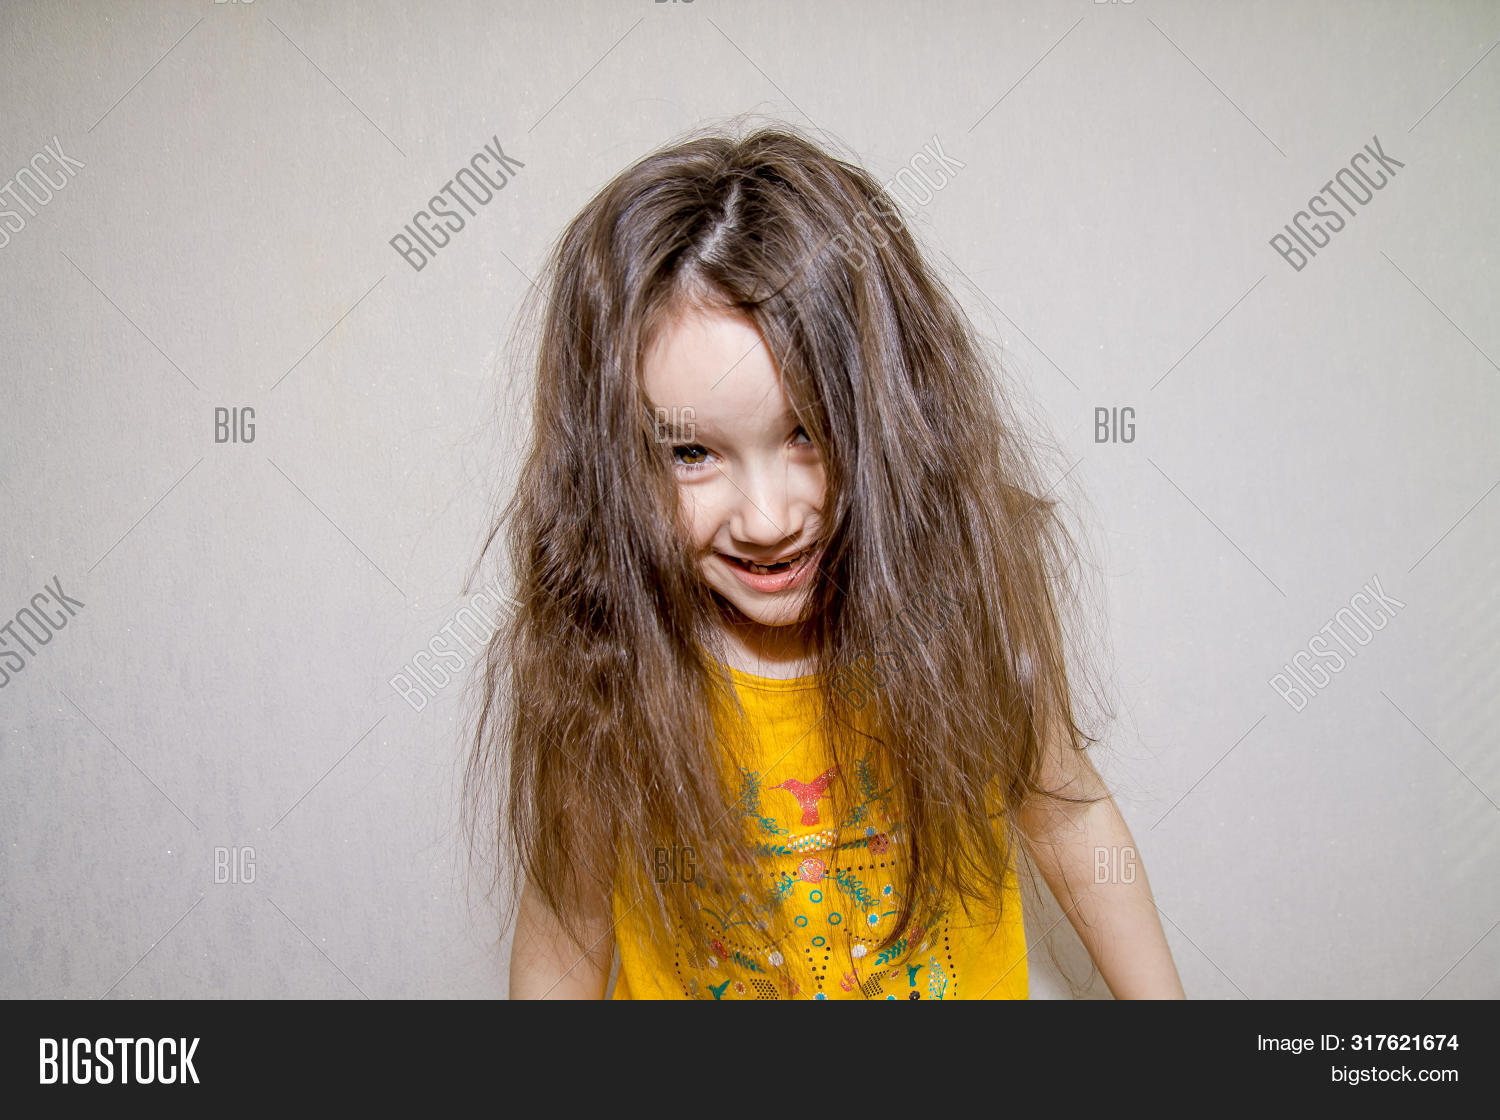 Portrait Of A Little Mope-headed Agressive Angry Girl Screaming On White Background